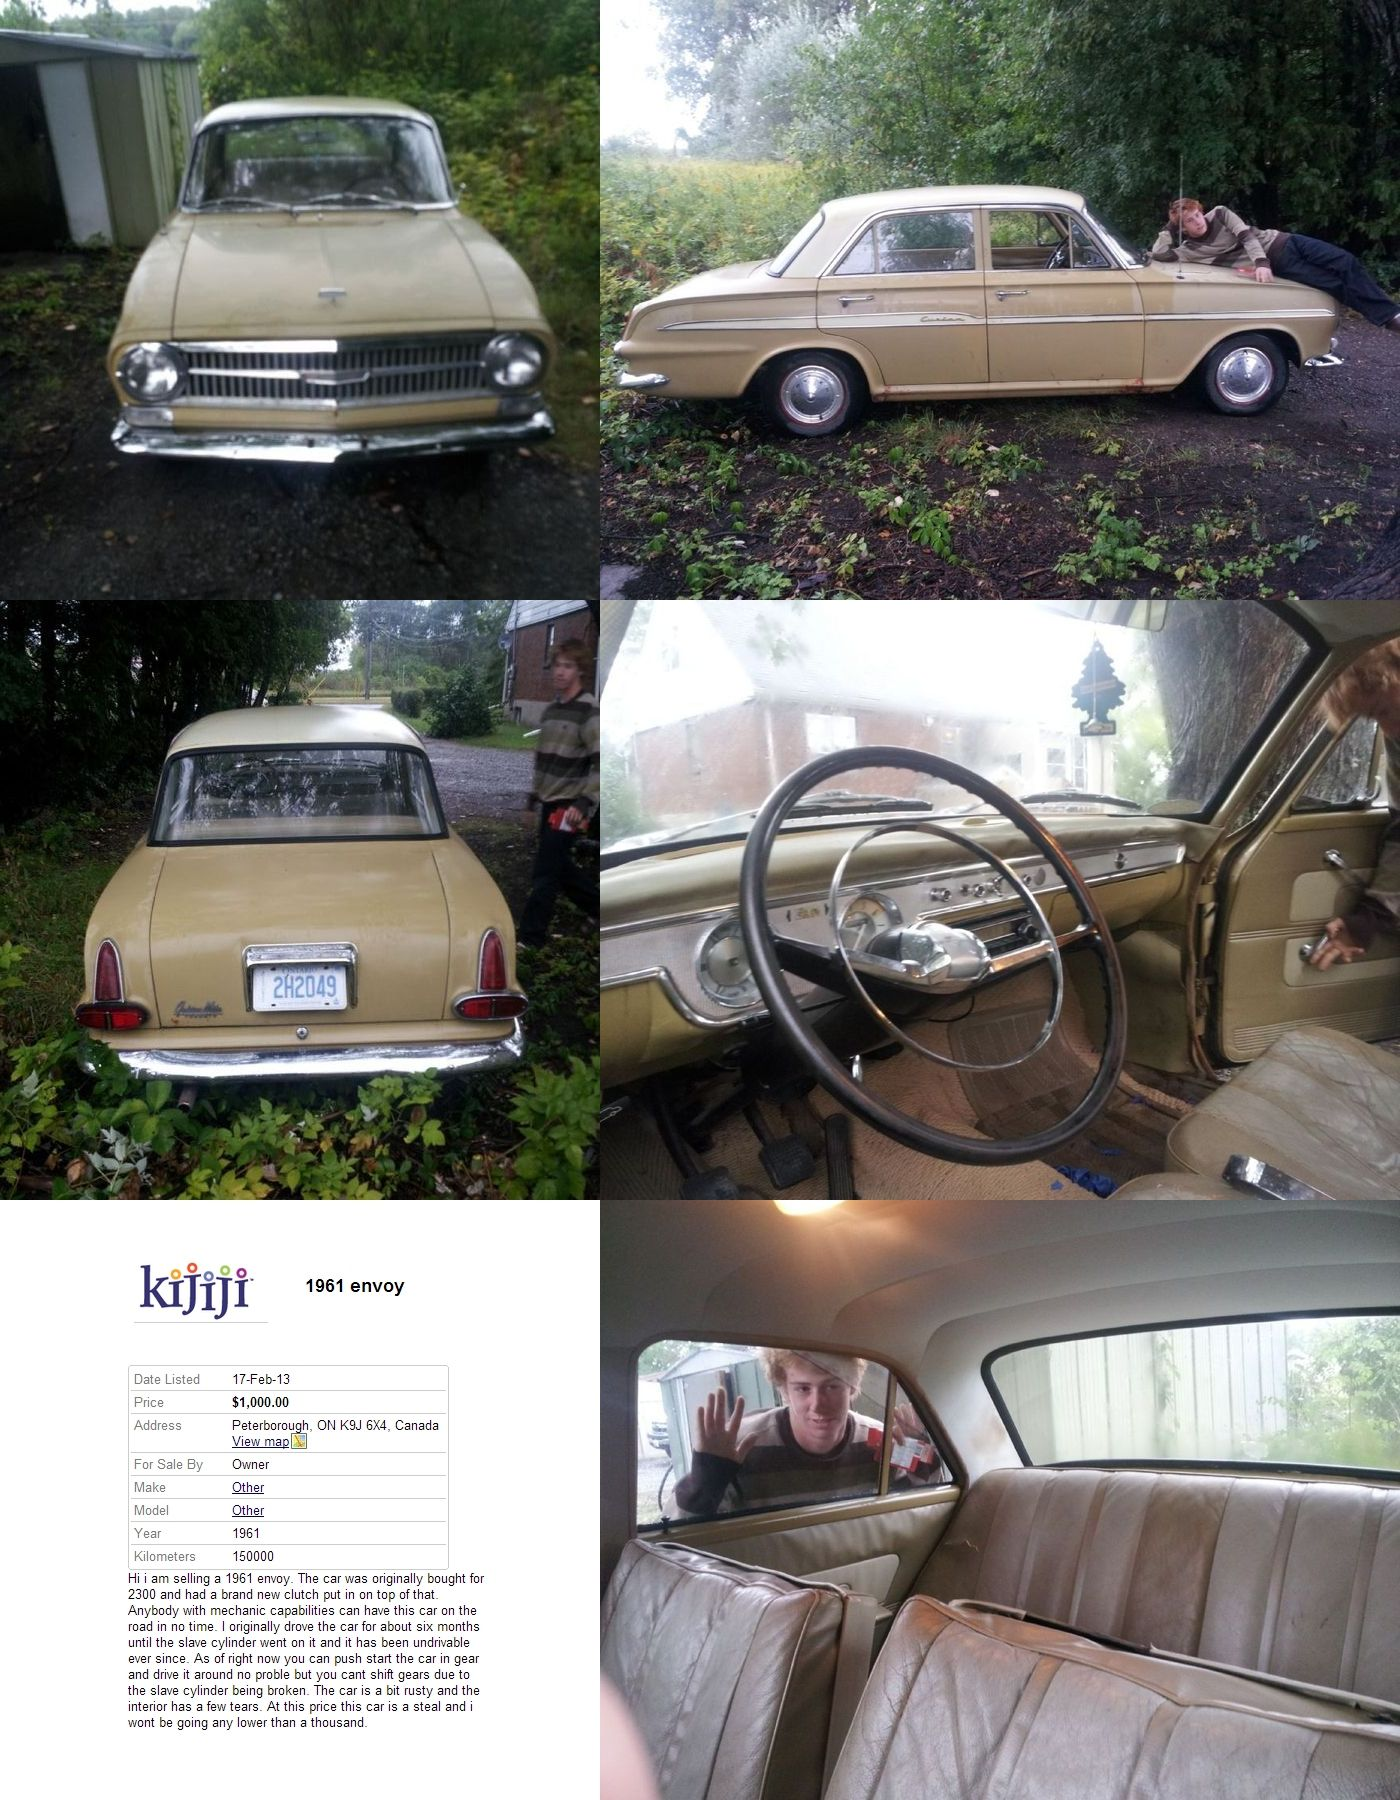 1961 Envoy Built by Vauxhall of England for the Canadian